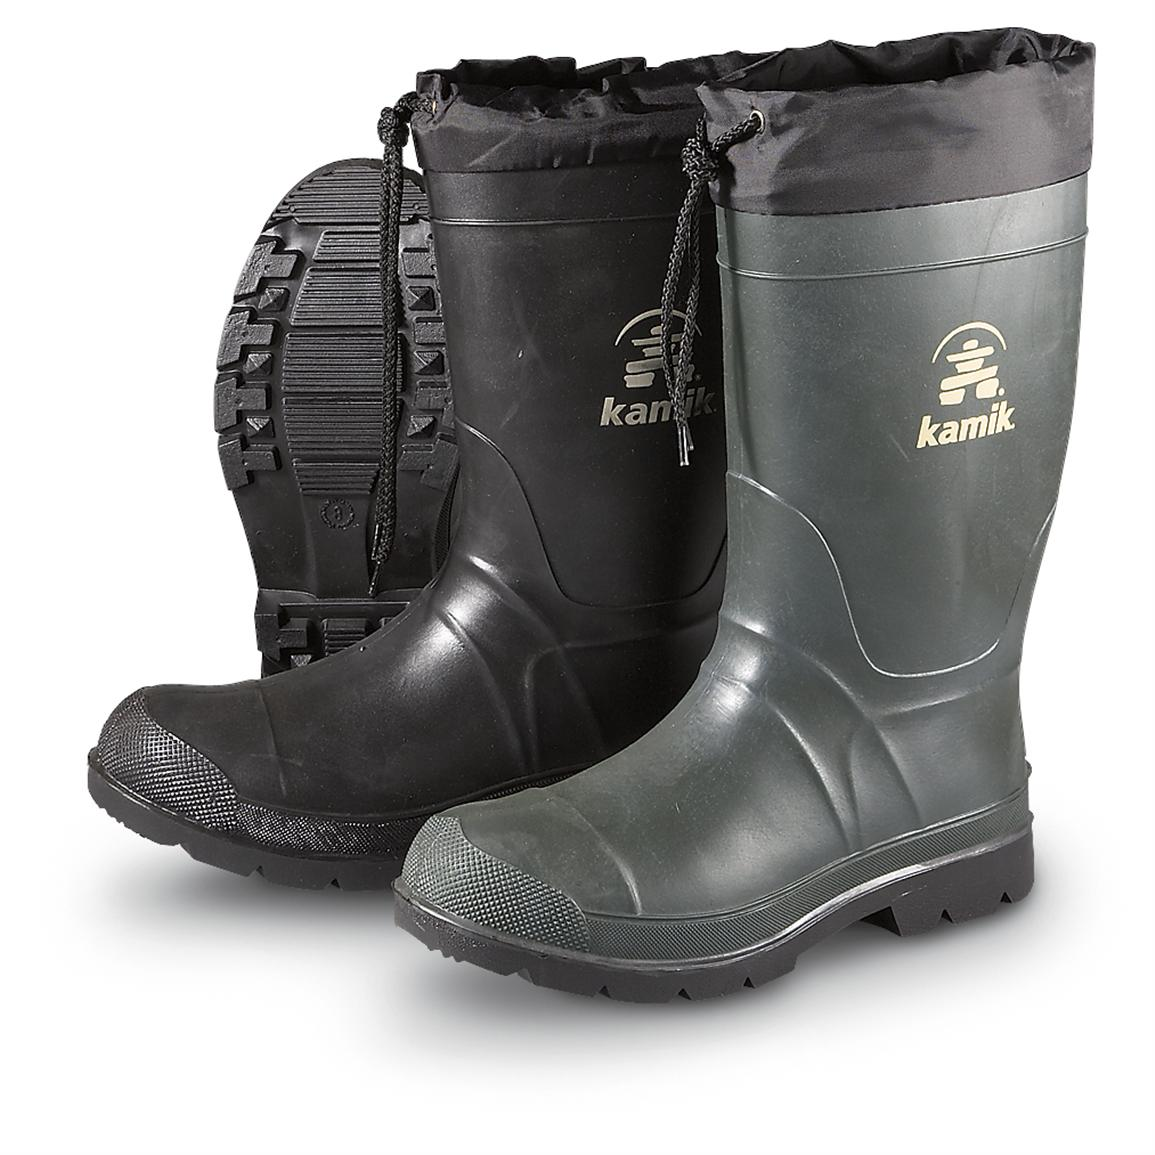 Men's Kamik® Insulated Rubber Hunter Boots